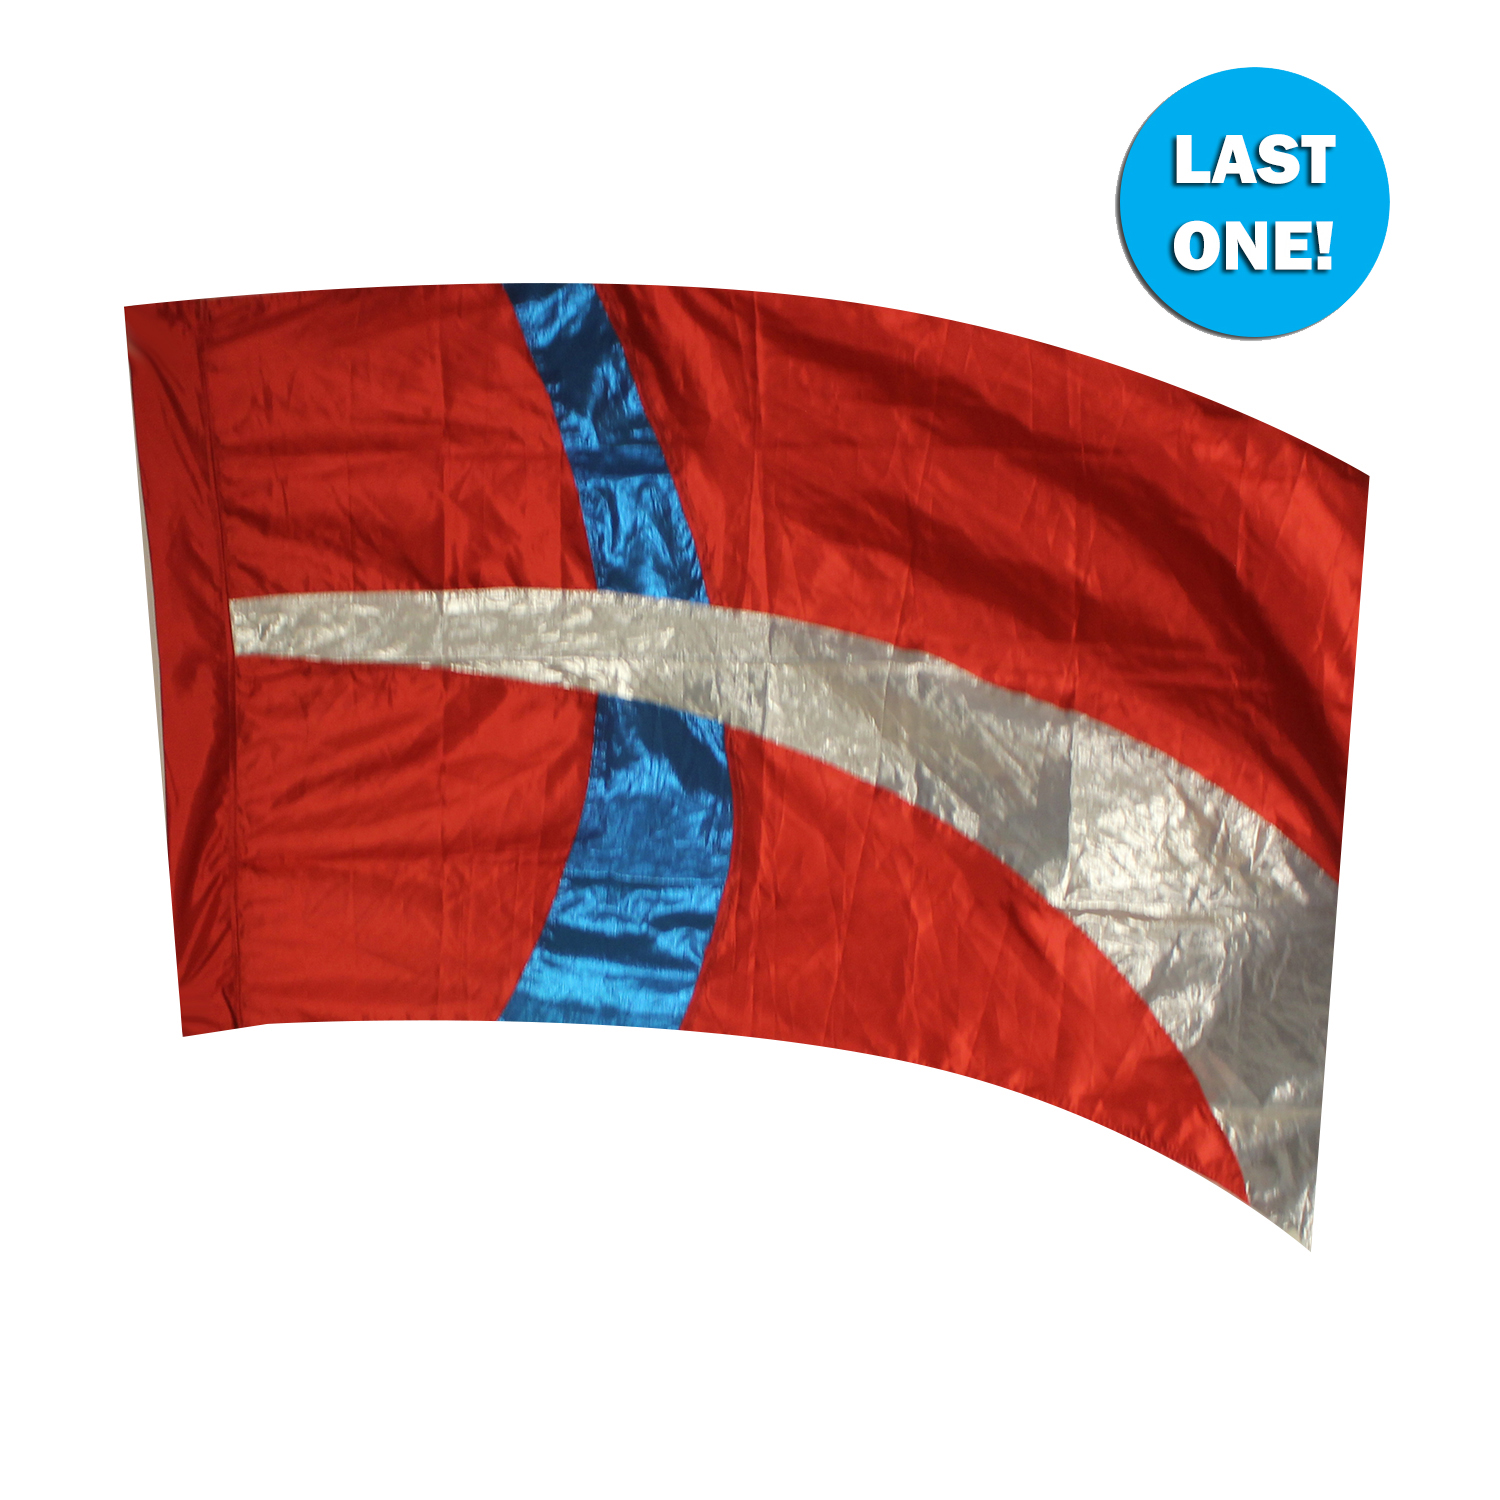 Closeout Flags: 090314